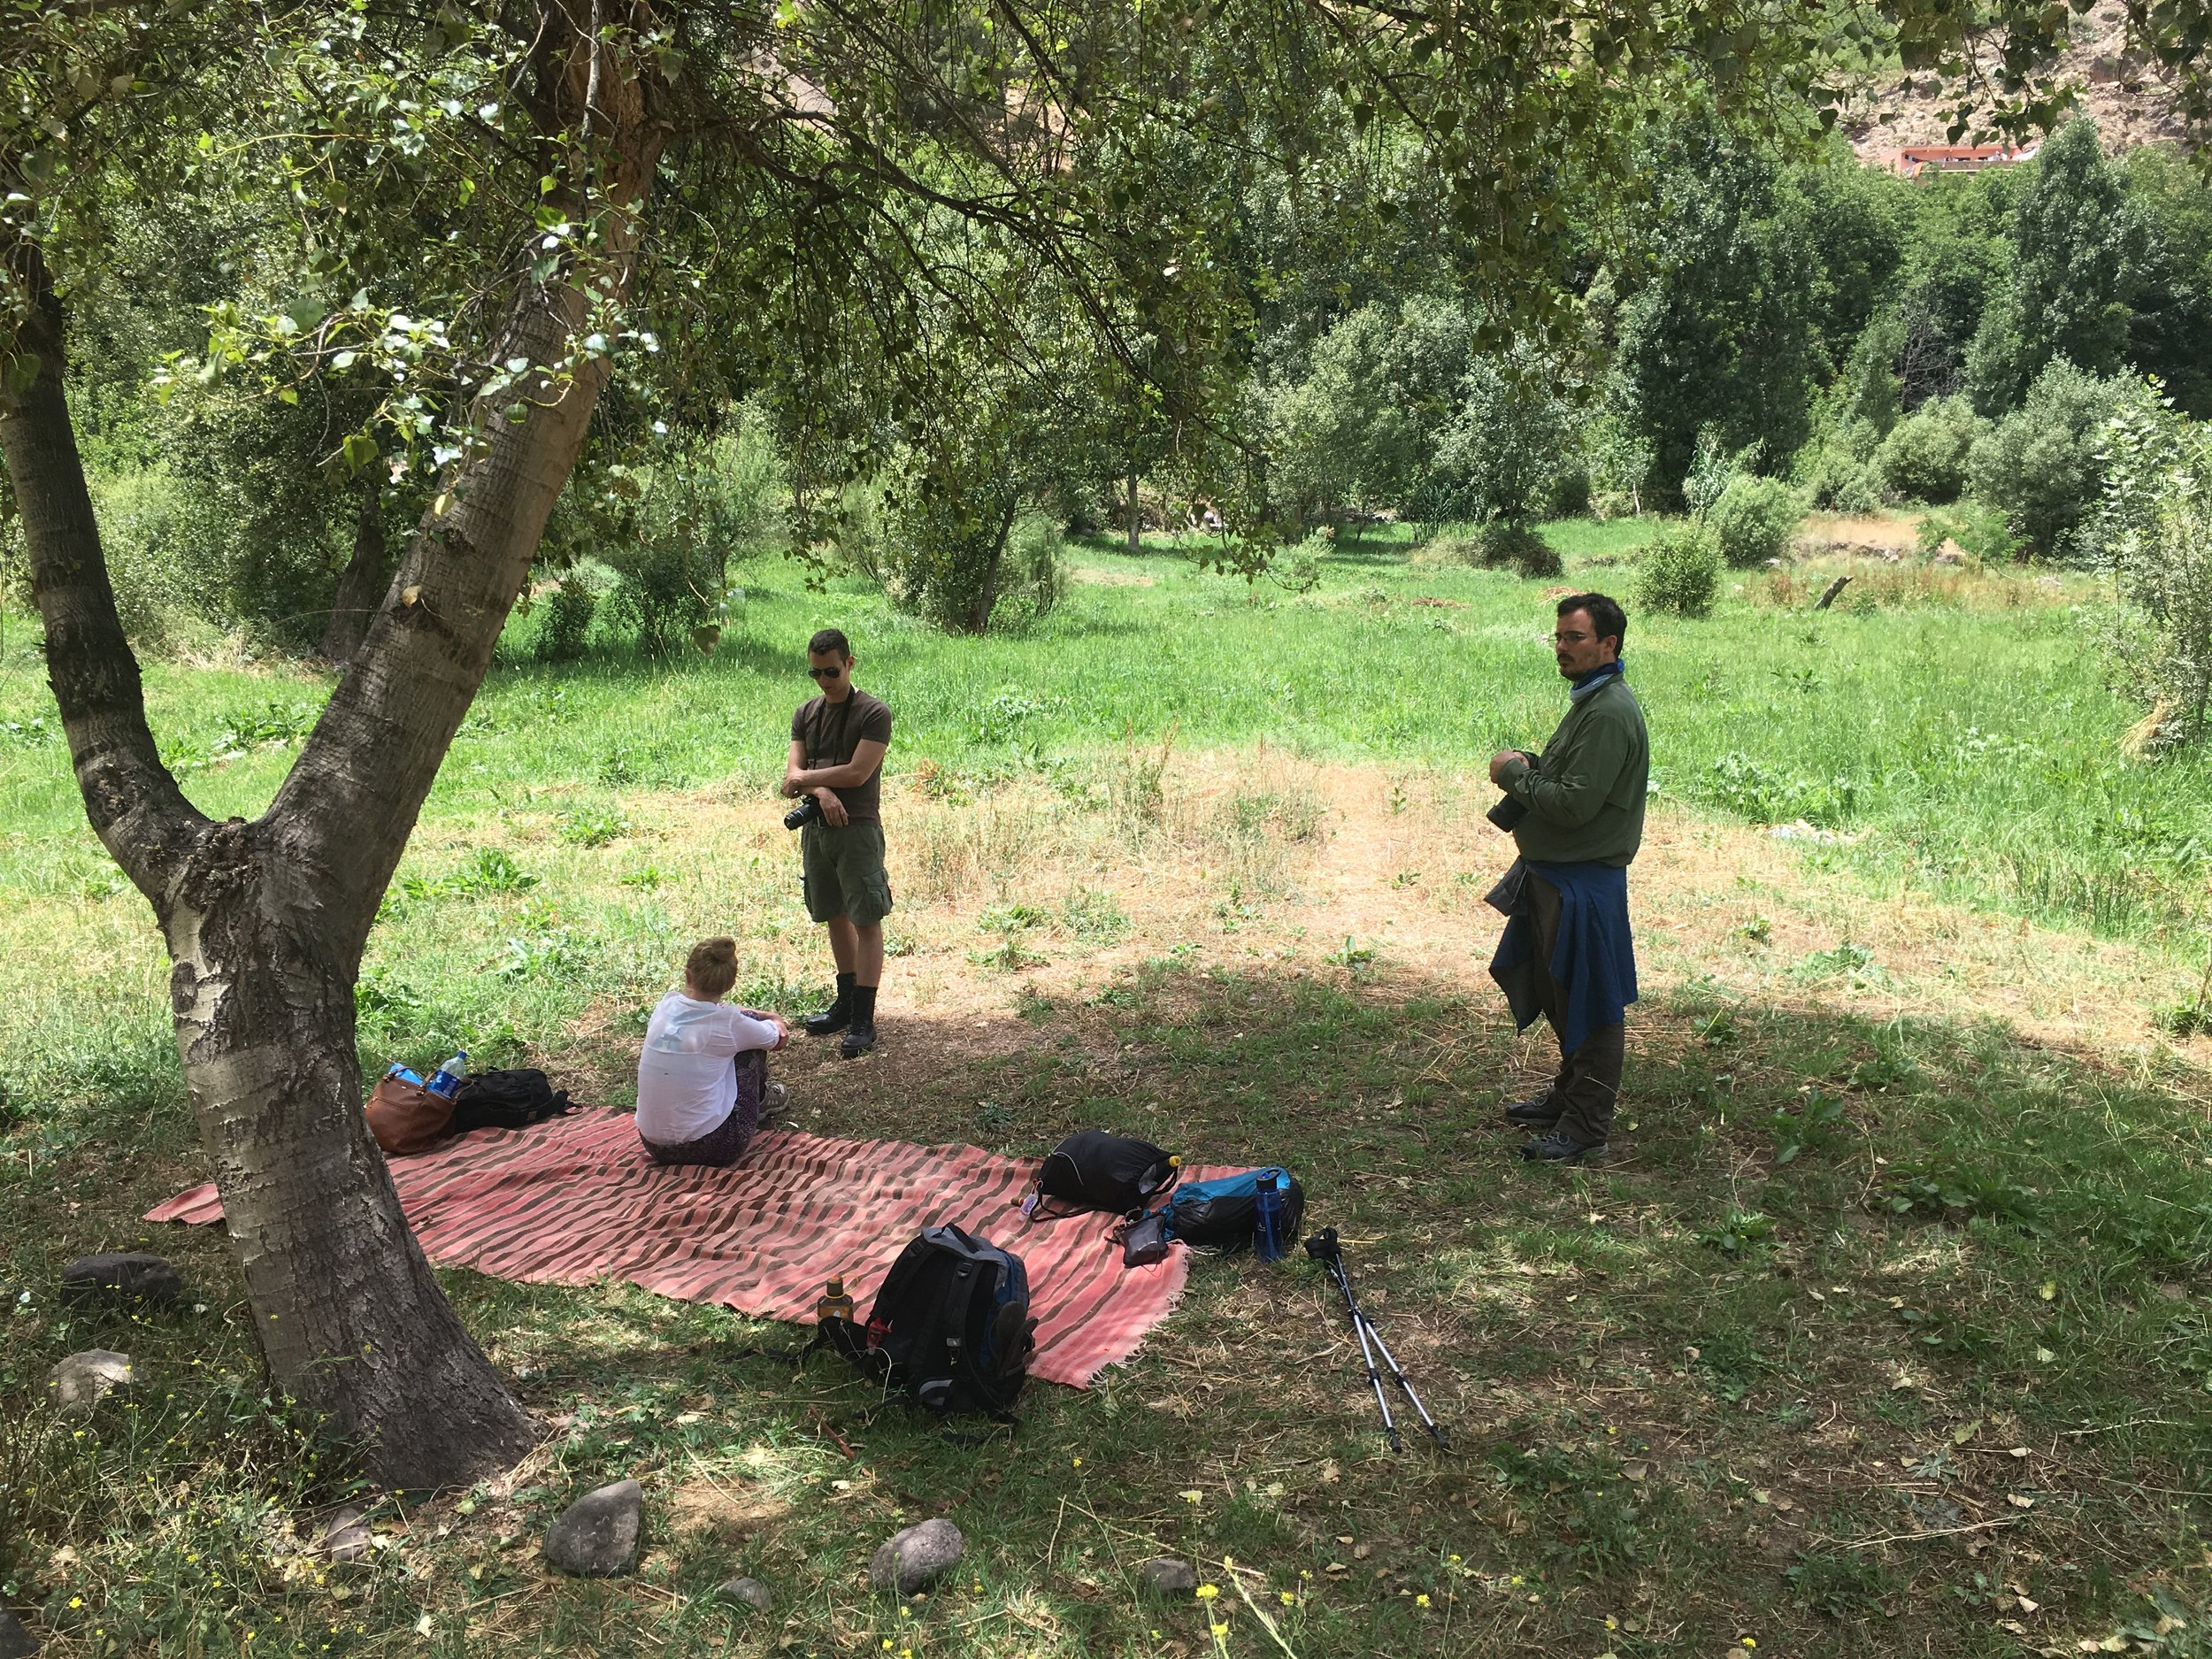 We ate our lunches on this sheep's wool blanket that doubled as Abdil's prayer rug.